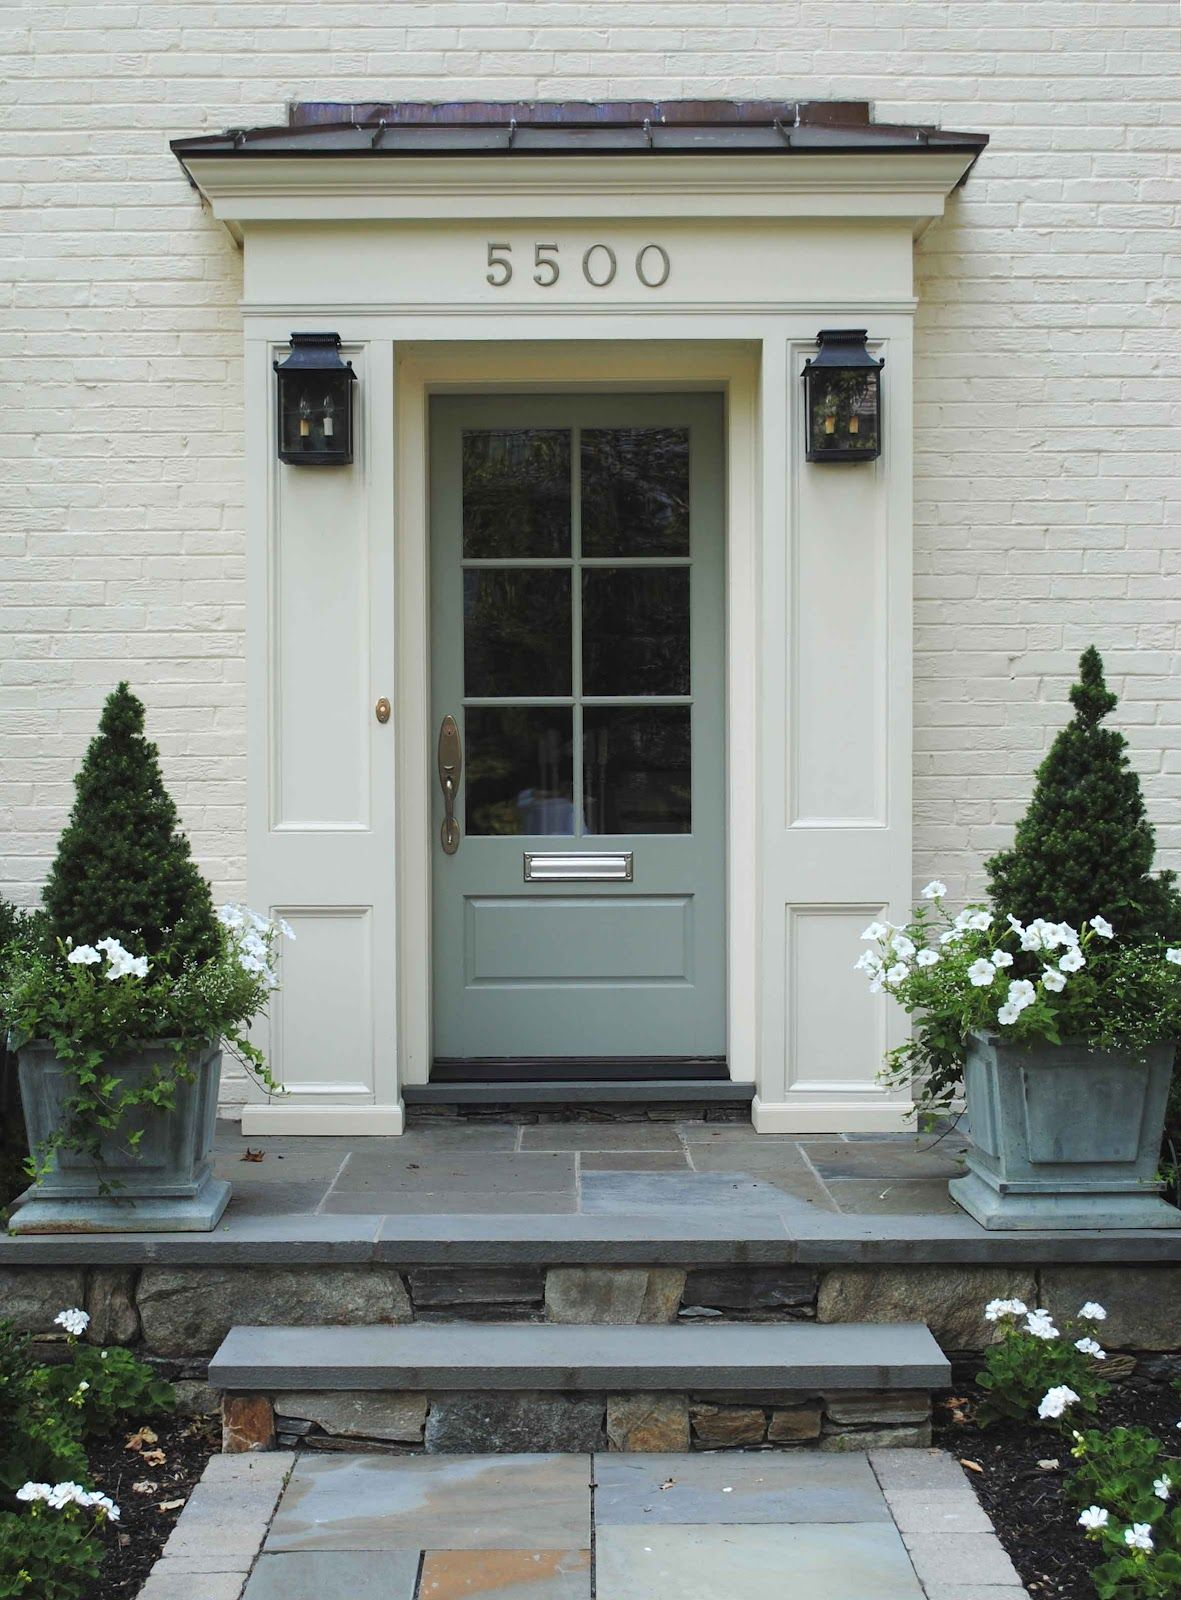 Mudroom Addition To Front Of House Yahoo Search Results: Traditional Front Entryway Planters - Yahoo Image Search Results